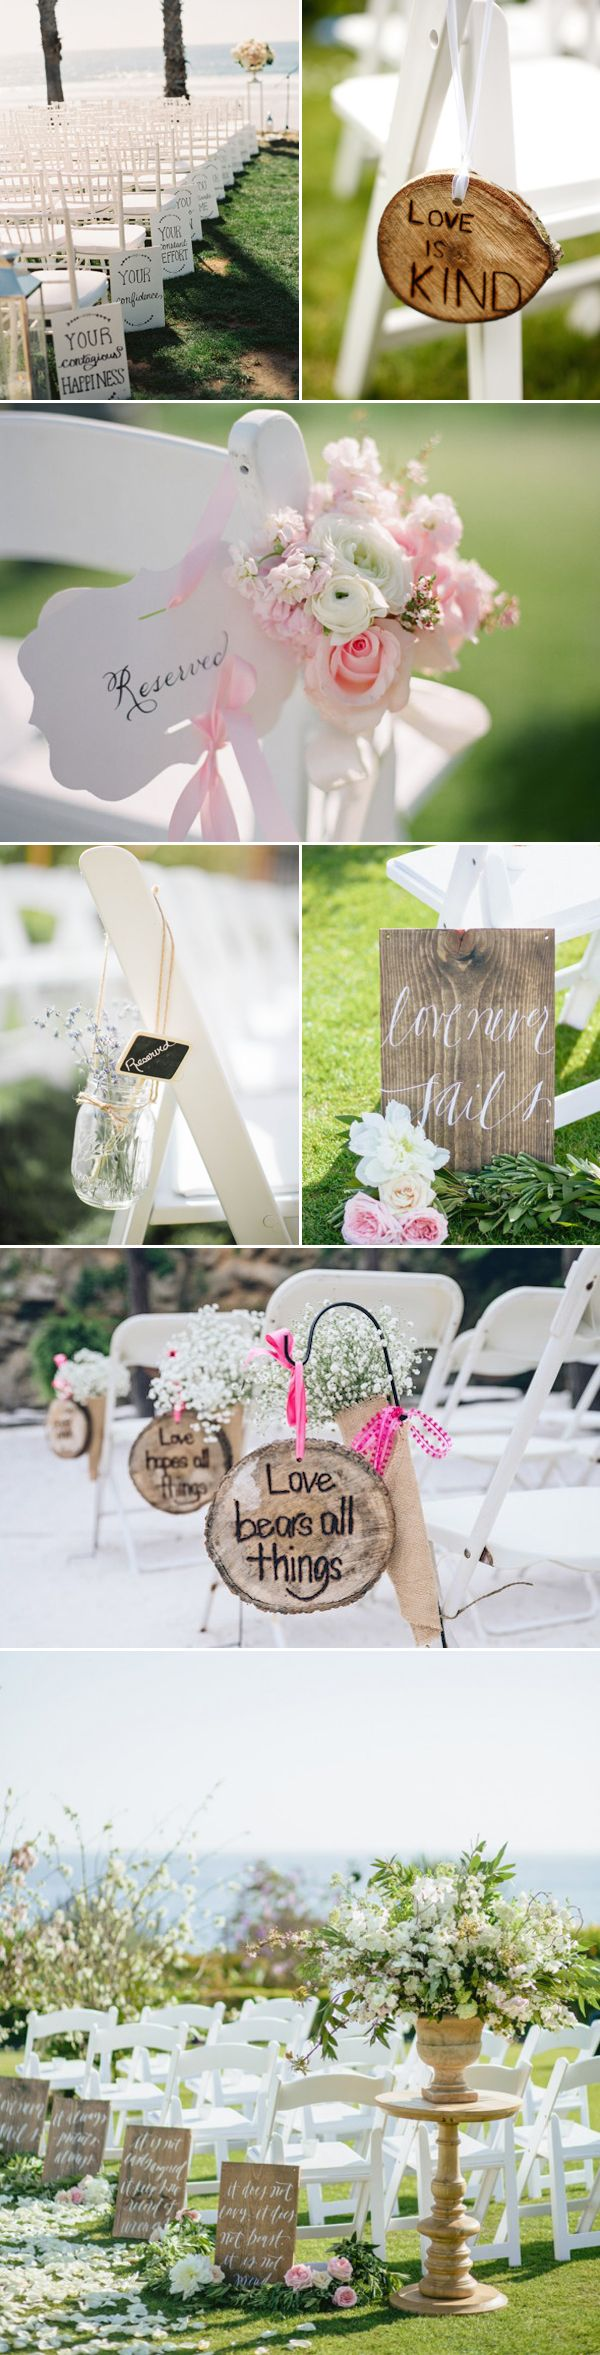 Message wedding aisle decor ideas / http://www.deerpearlflowers.com/35-chic-wedding-ceremony-aisle-markers/